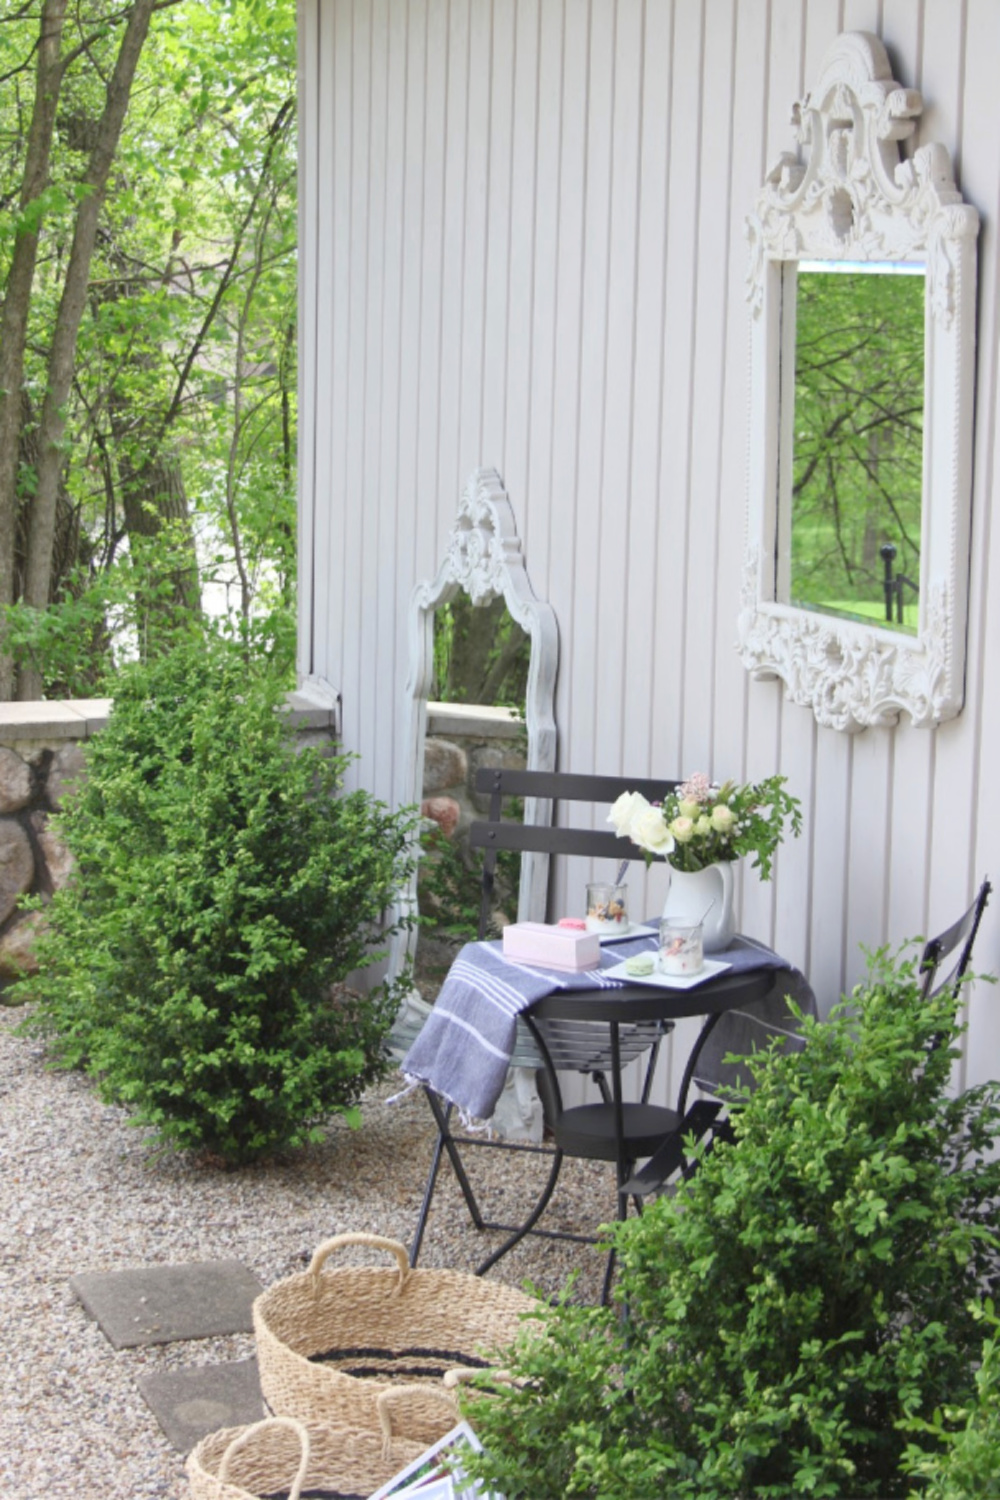 French country courtyard with boxwood, gravel, bisto set, baskets, and a French mirror. #hellolovelystudio #frenchcountry #bistroset #courtyard #gardendecor #boxwood #frenchbaskets #outdoordecor #outdooroasis